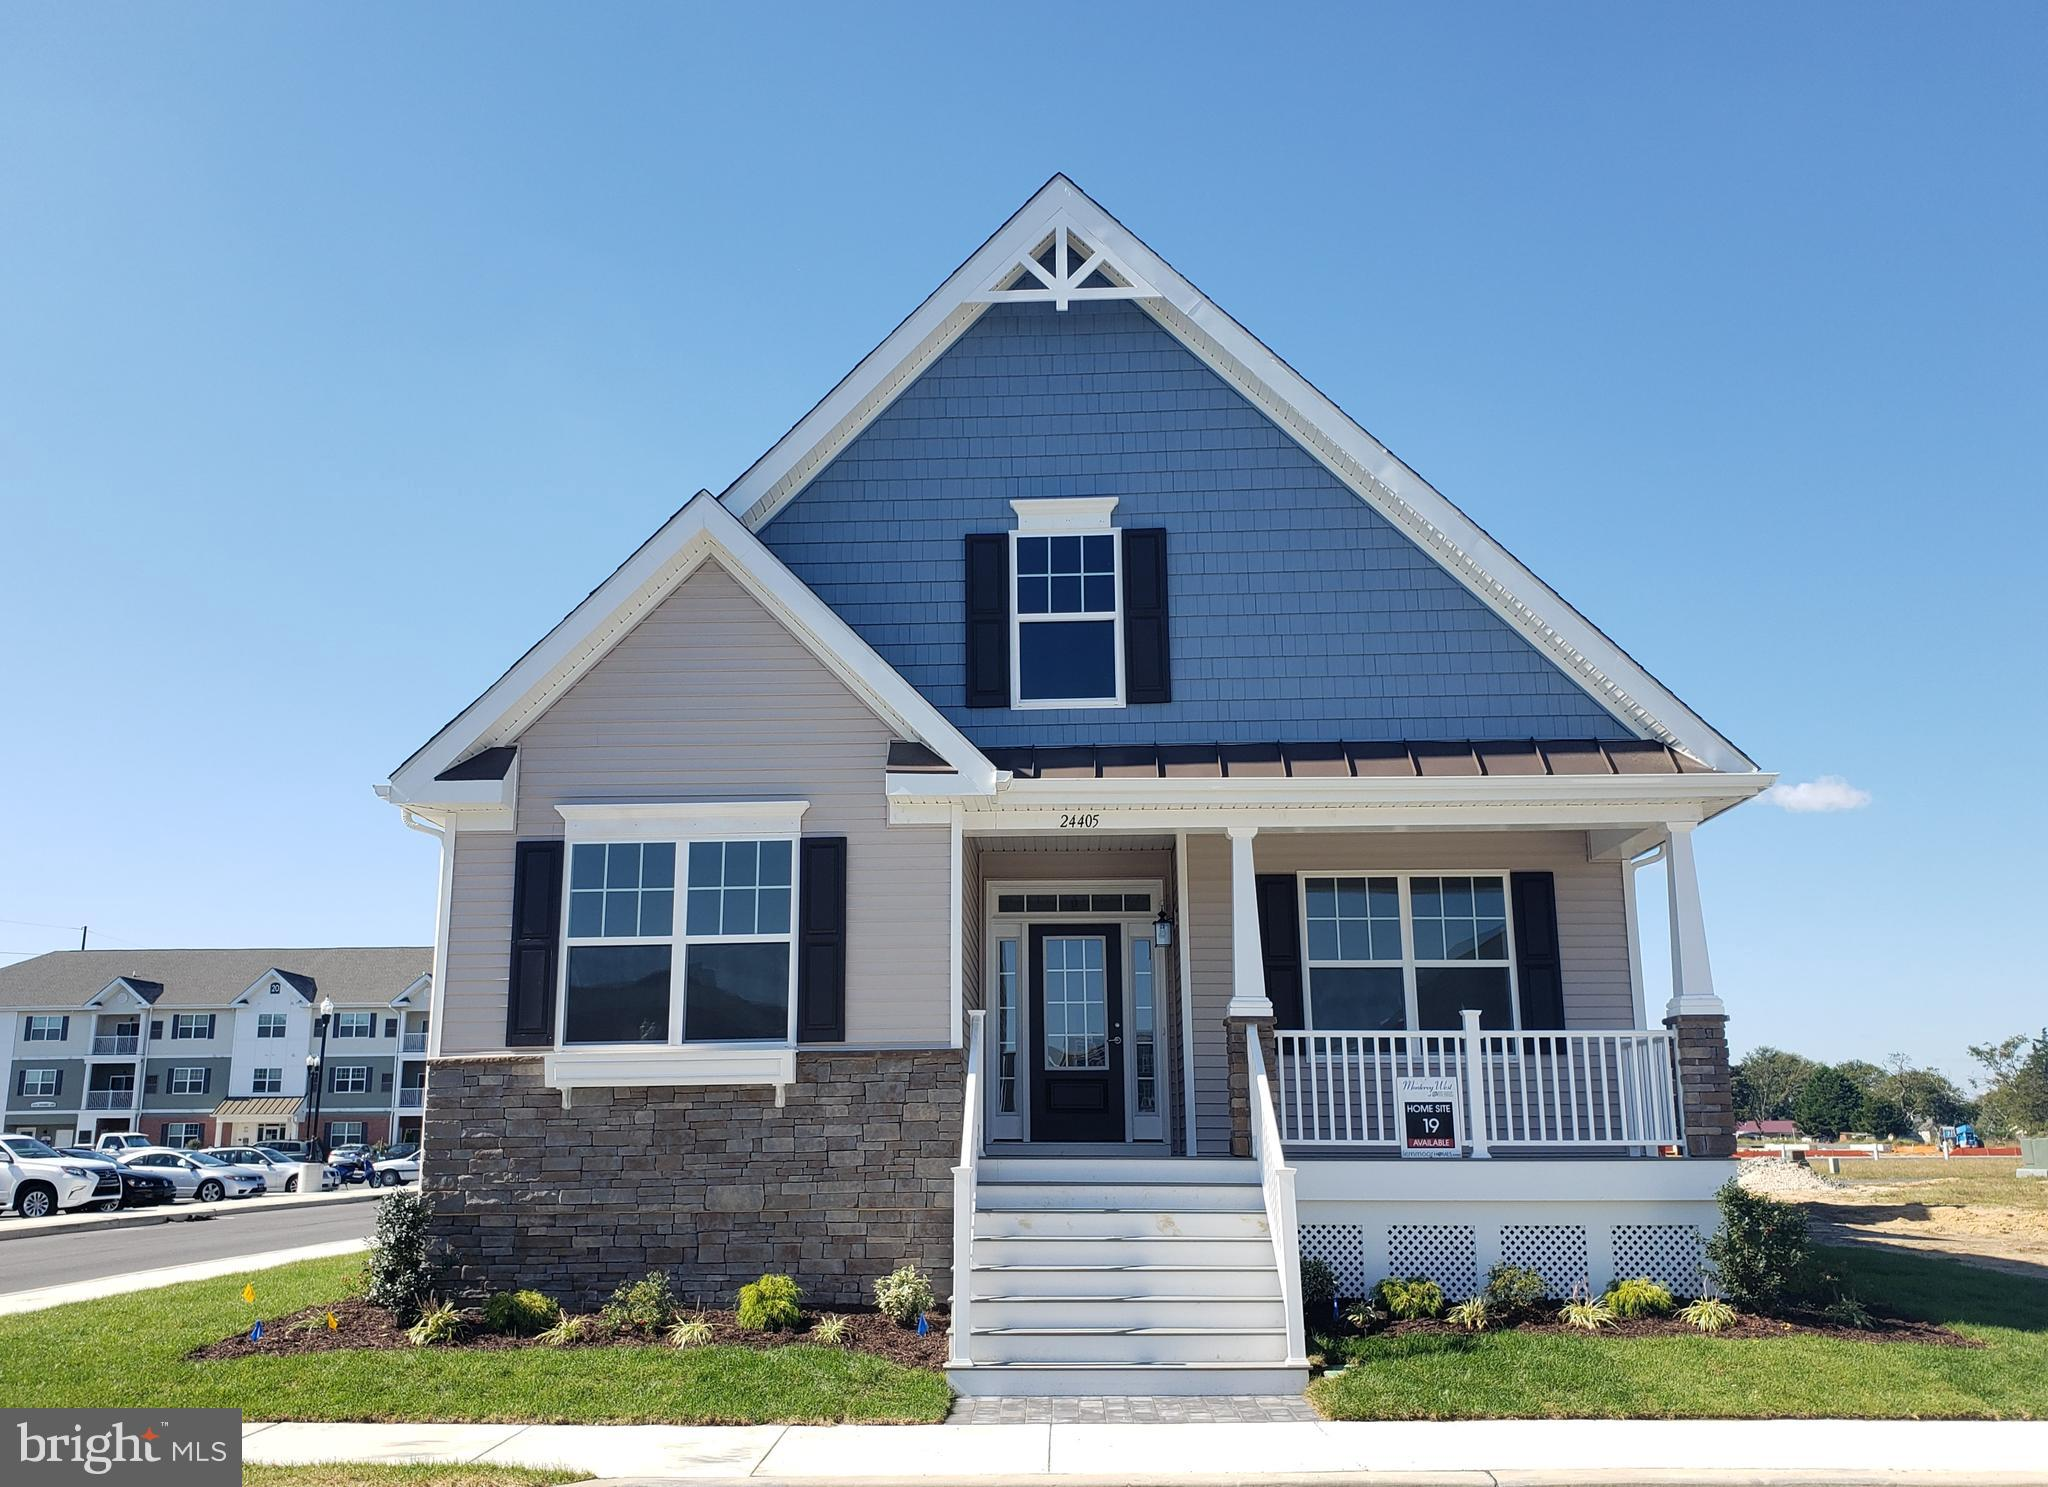 Why wait to build when you can move right in this brand new nicely appointed home! Many great featur